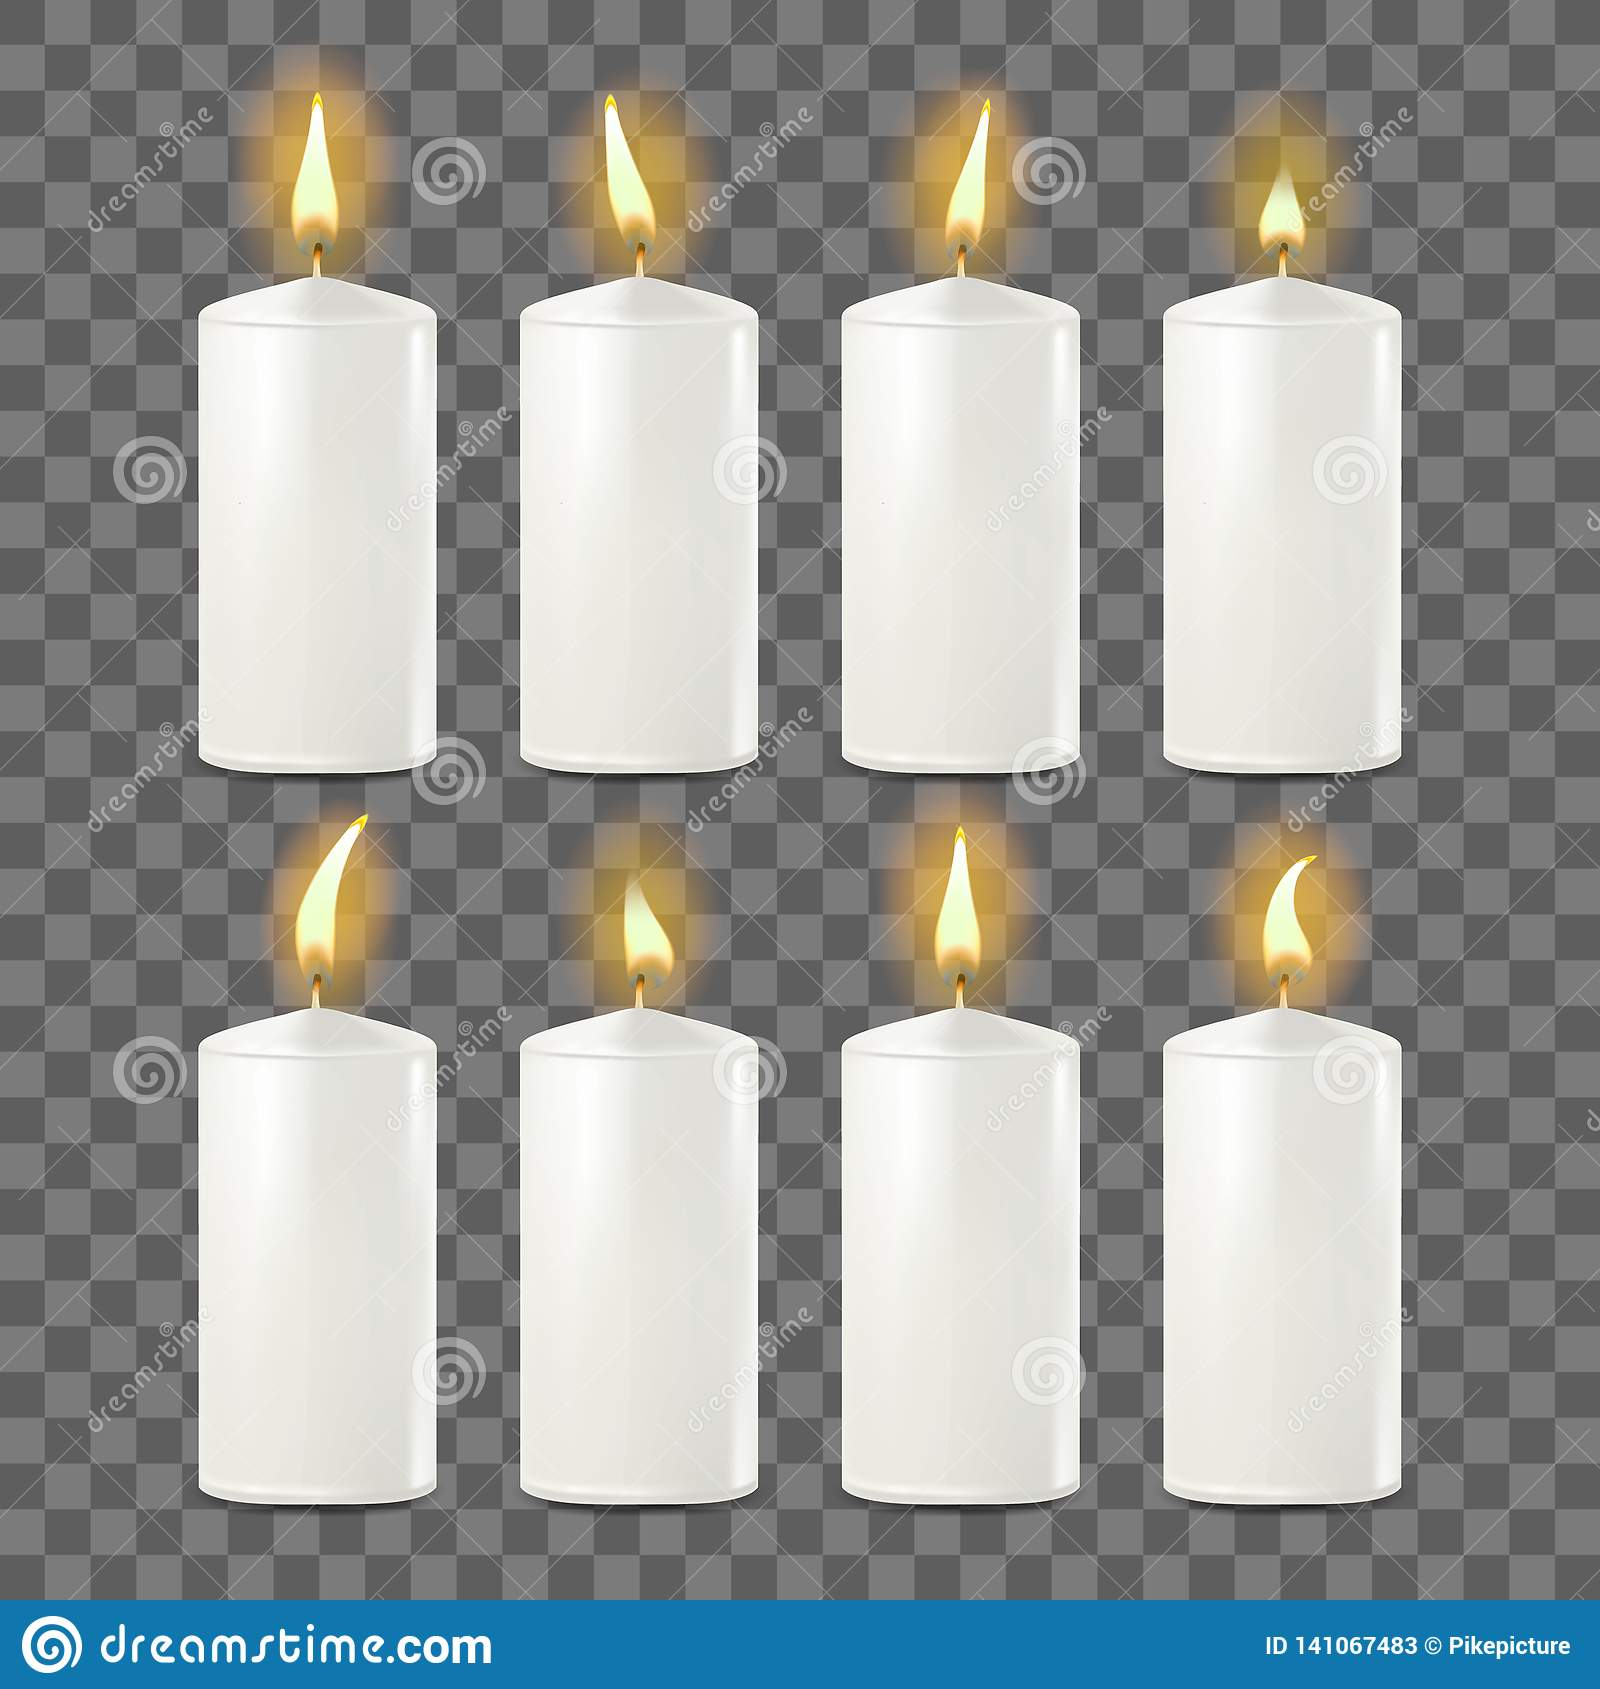 Candles Set Vector. White. Religion, Church Prayer. Transparent Background. Isolated Realistic Illustration